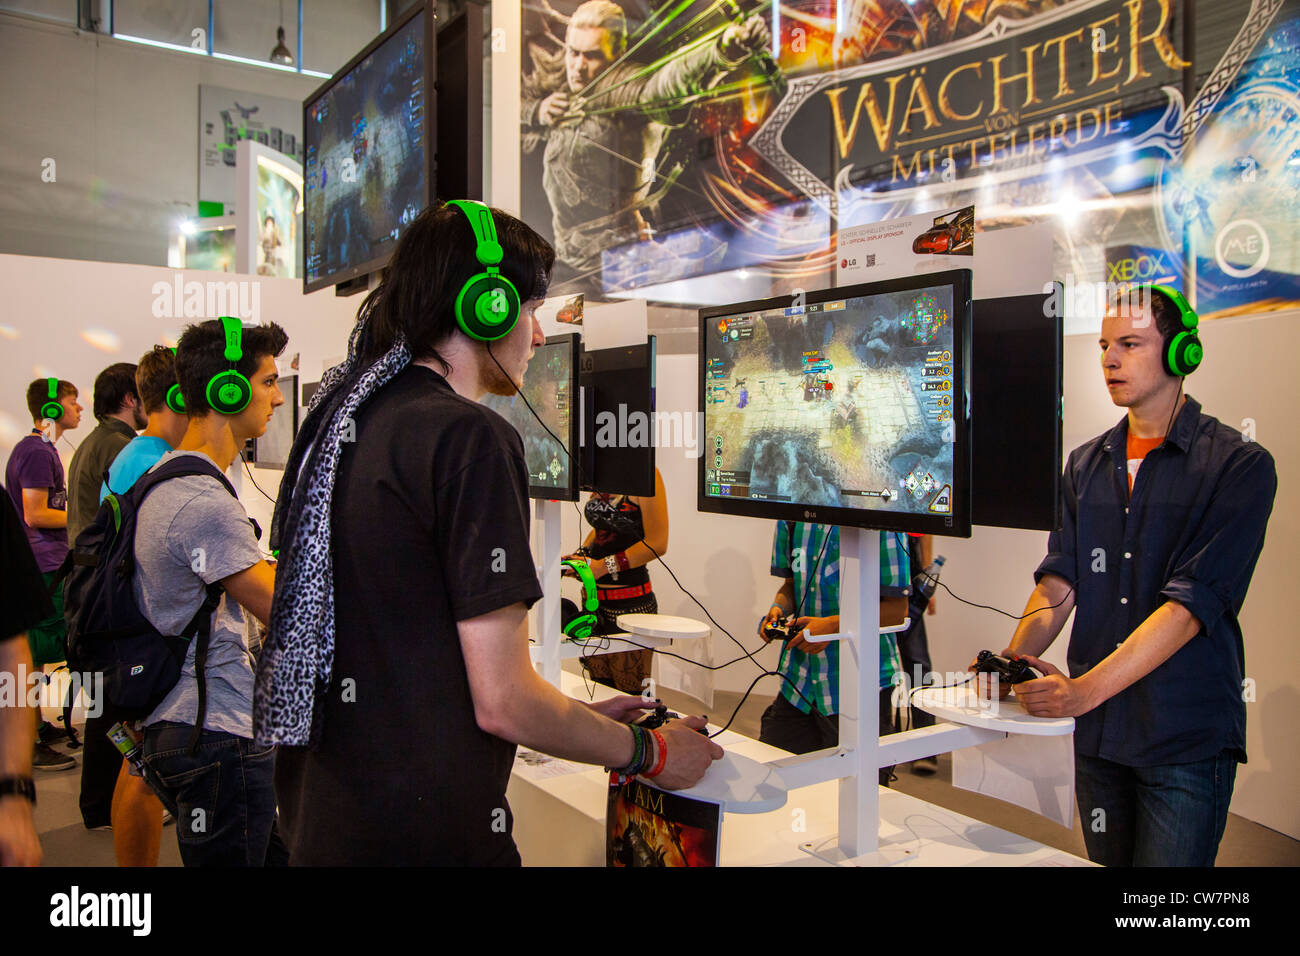 Gamescom, world largest trade show for computer games and